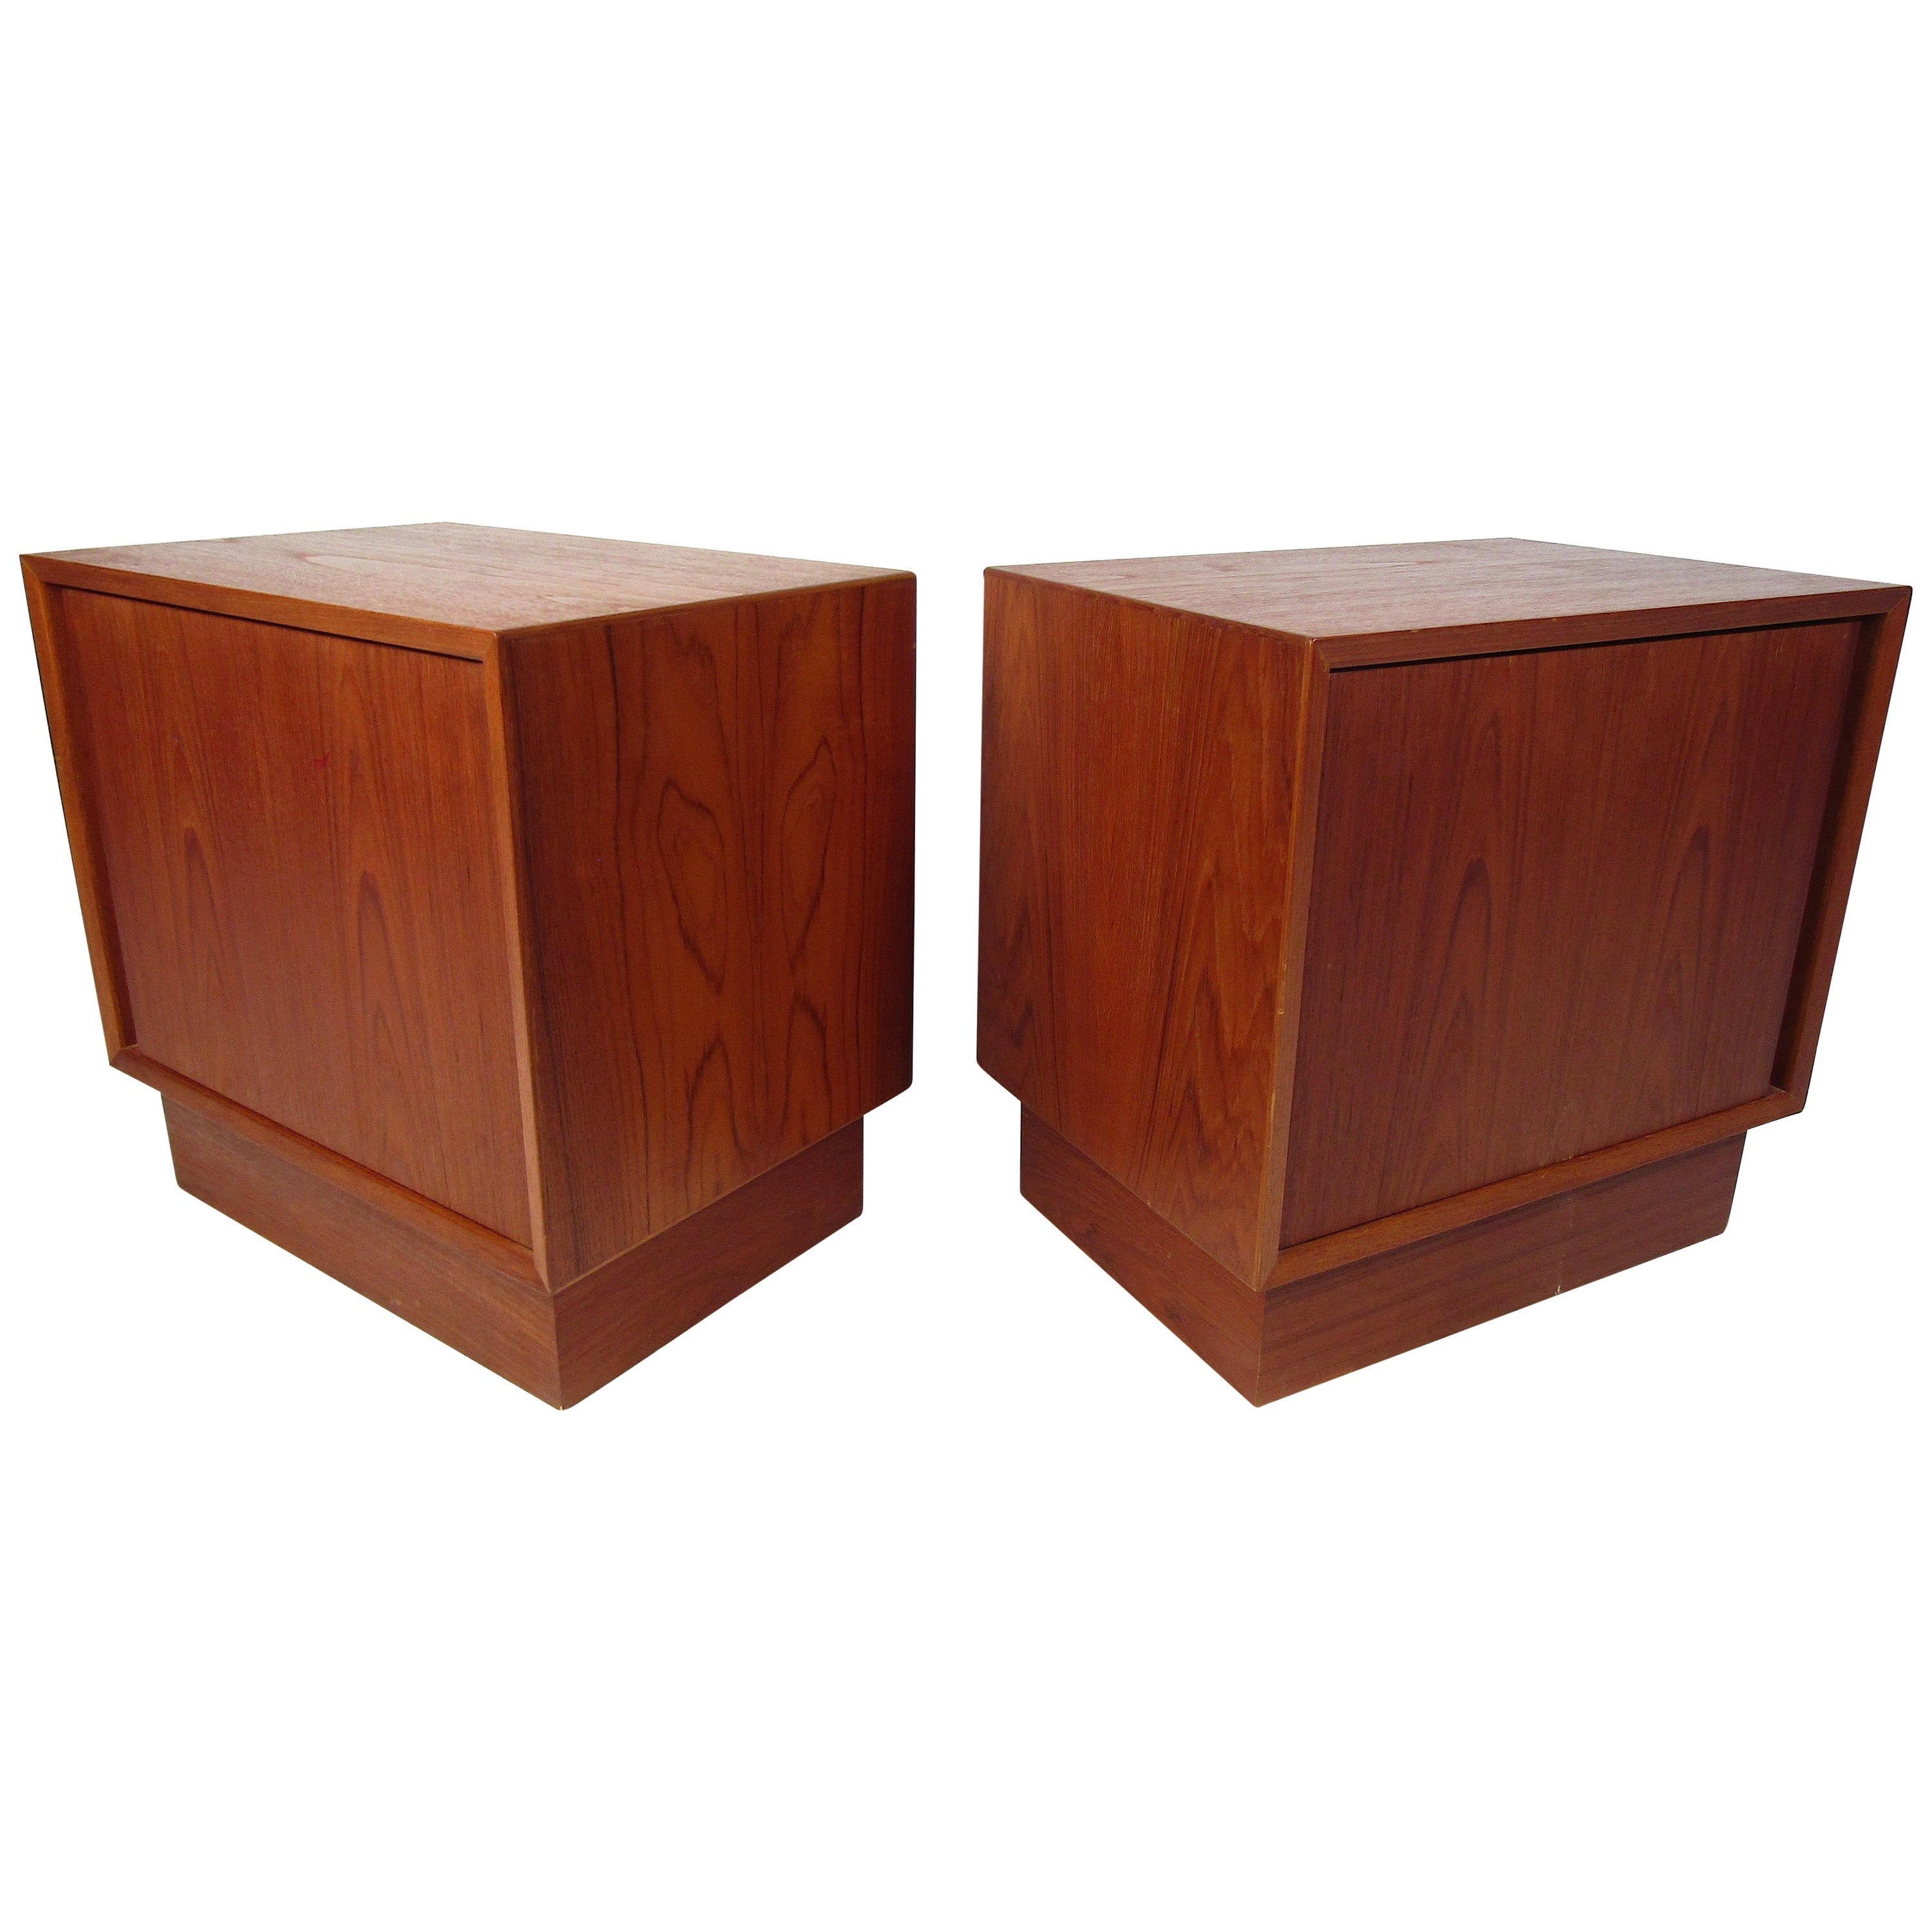 Pair of Norwegian Modern Nightstands